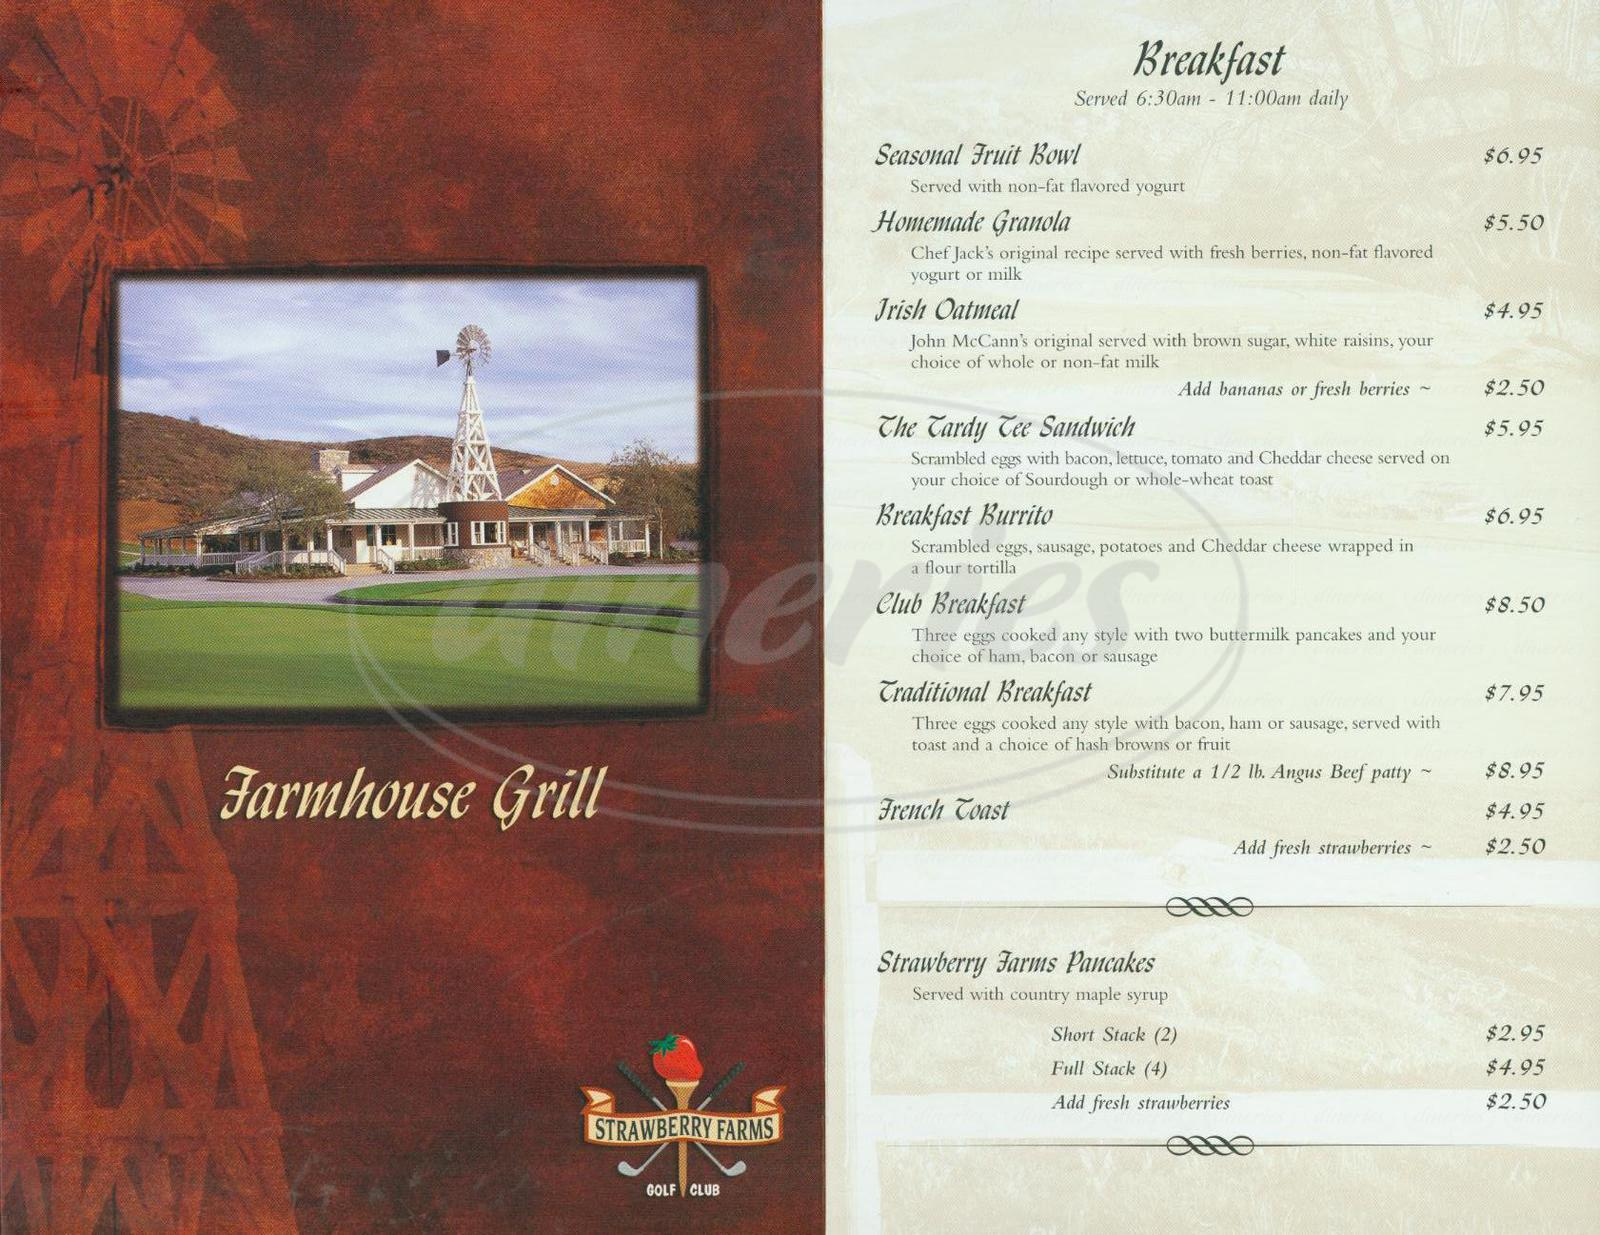 menu for Farmhouse Grill at Strawberry Farms